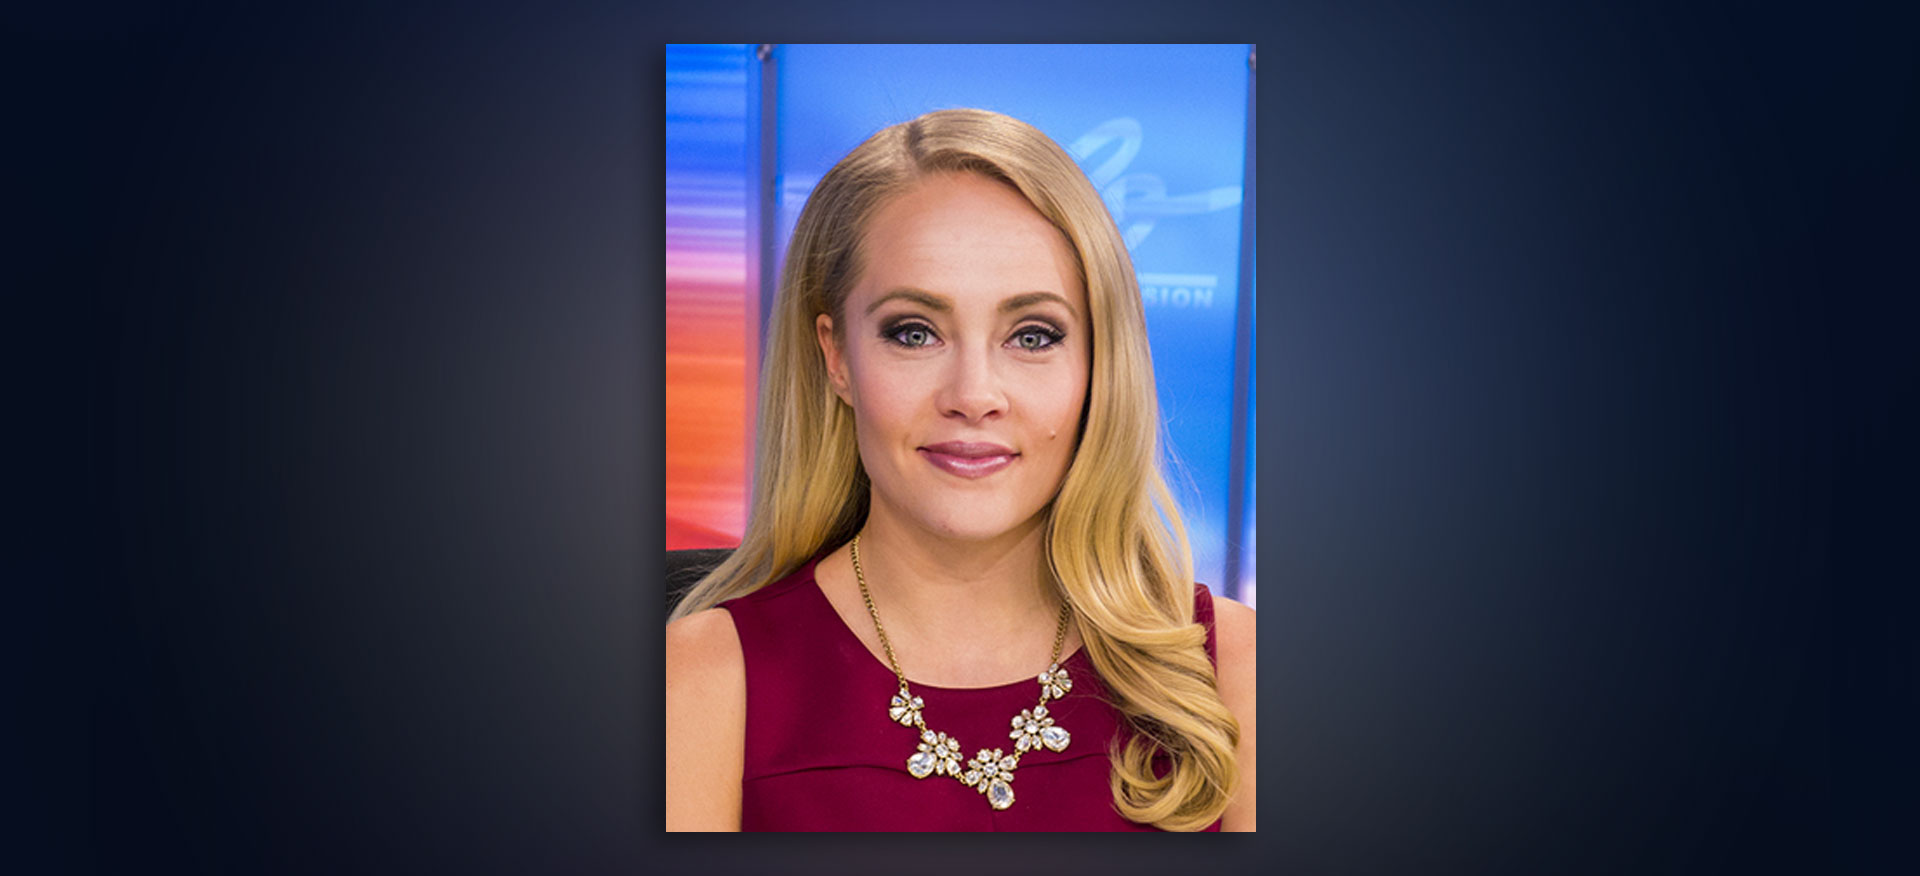 KELOLAND This Morning Welcomes Brheanna Berry